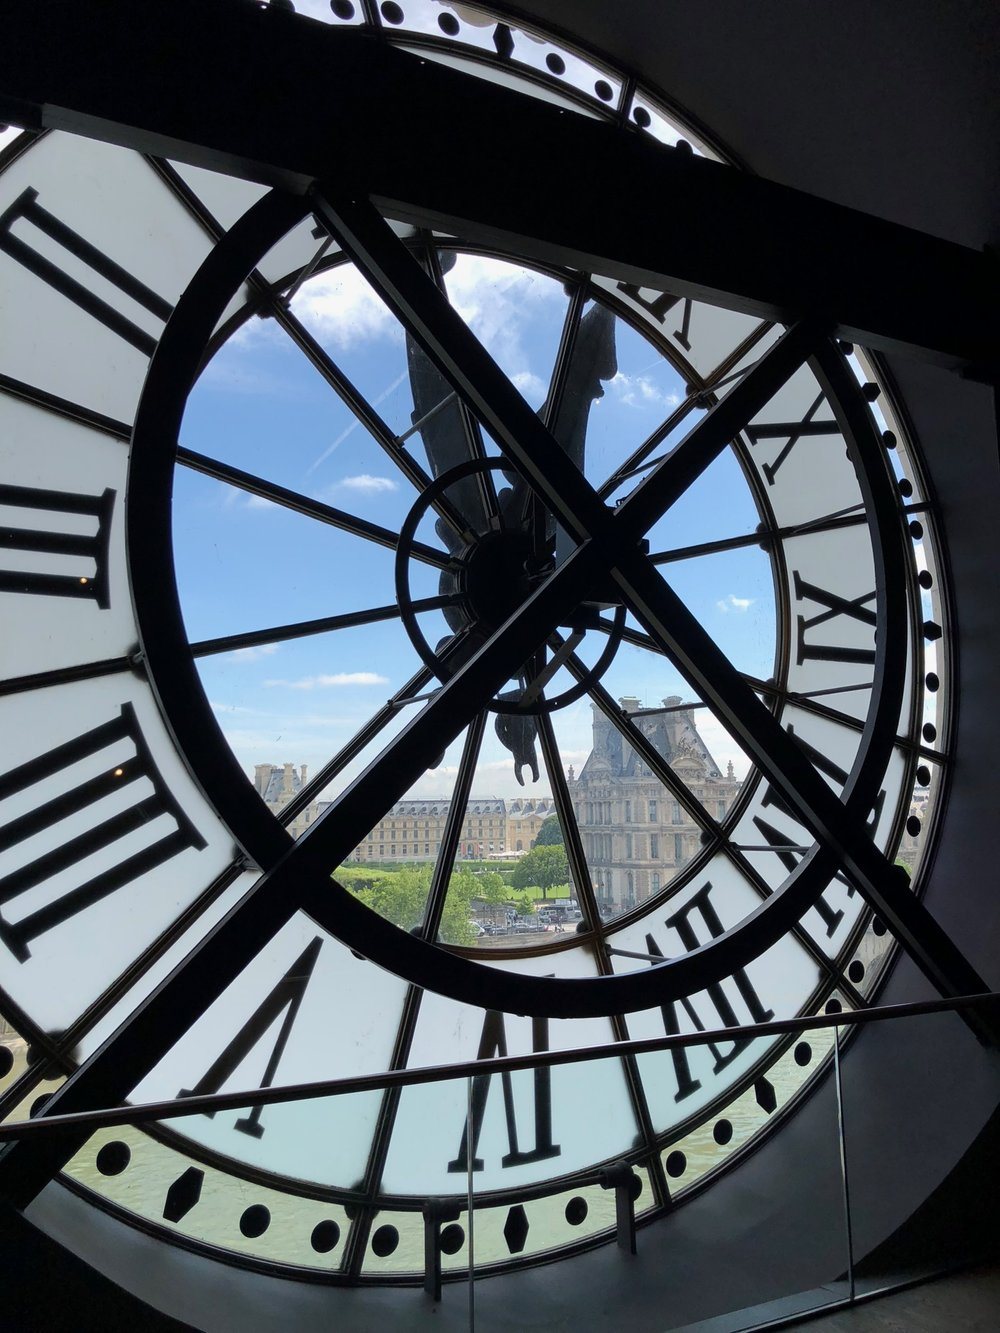 The famous clock face inside the Musee D'Orsay, looking out over the Louvre.